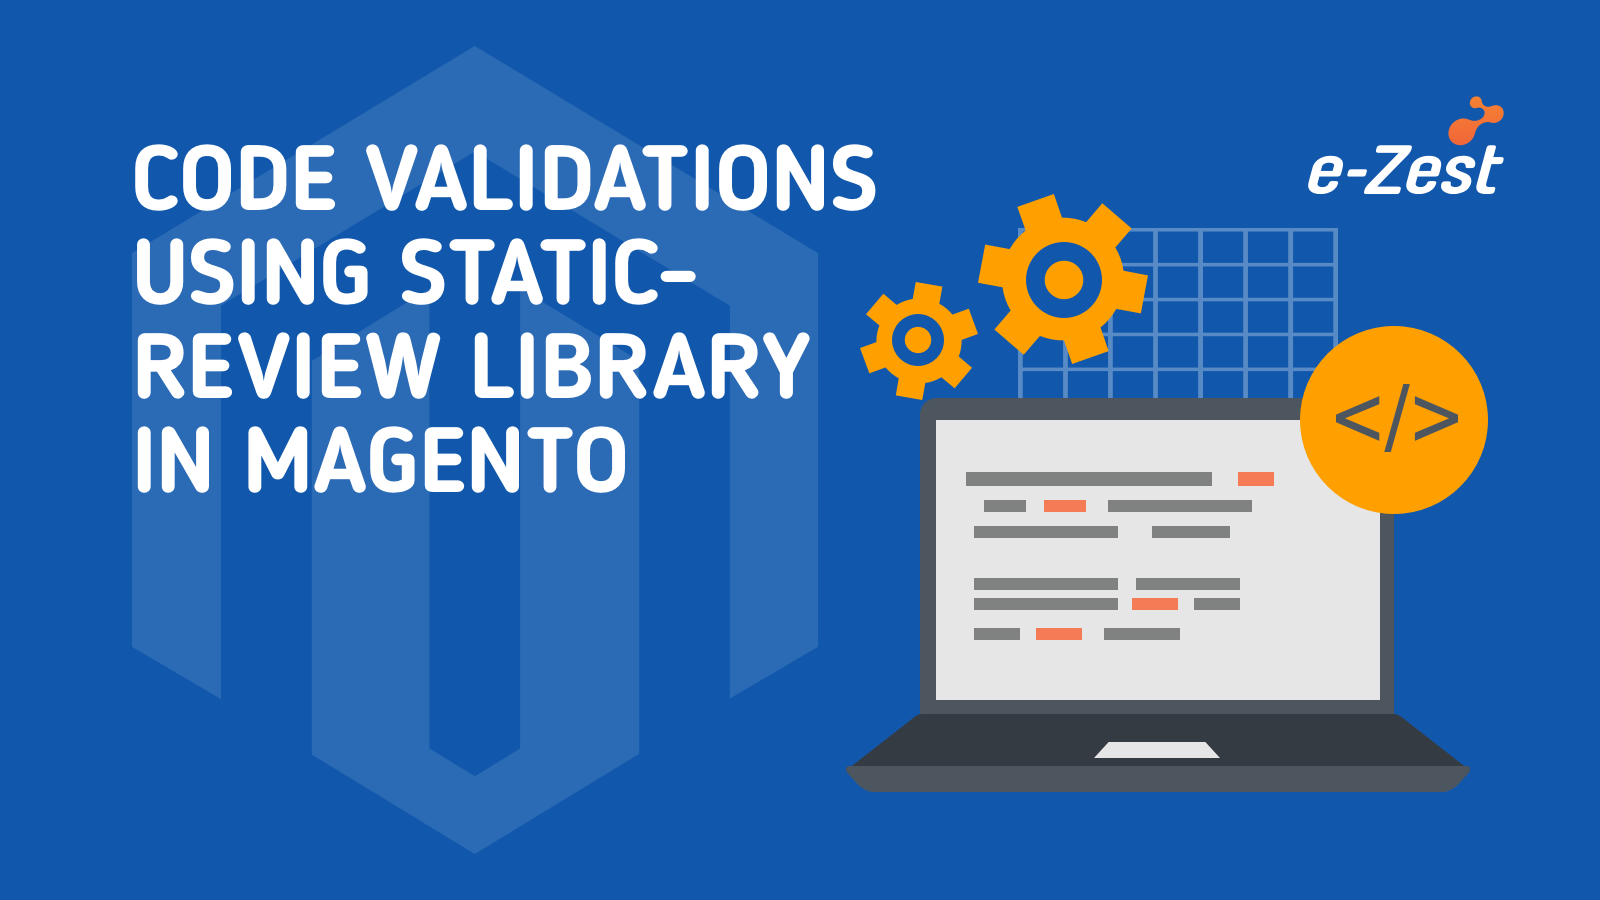 Code validations using static-review library in Magento